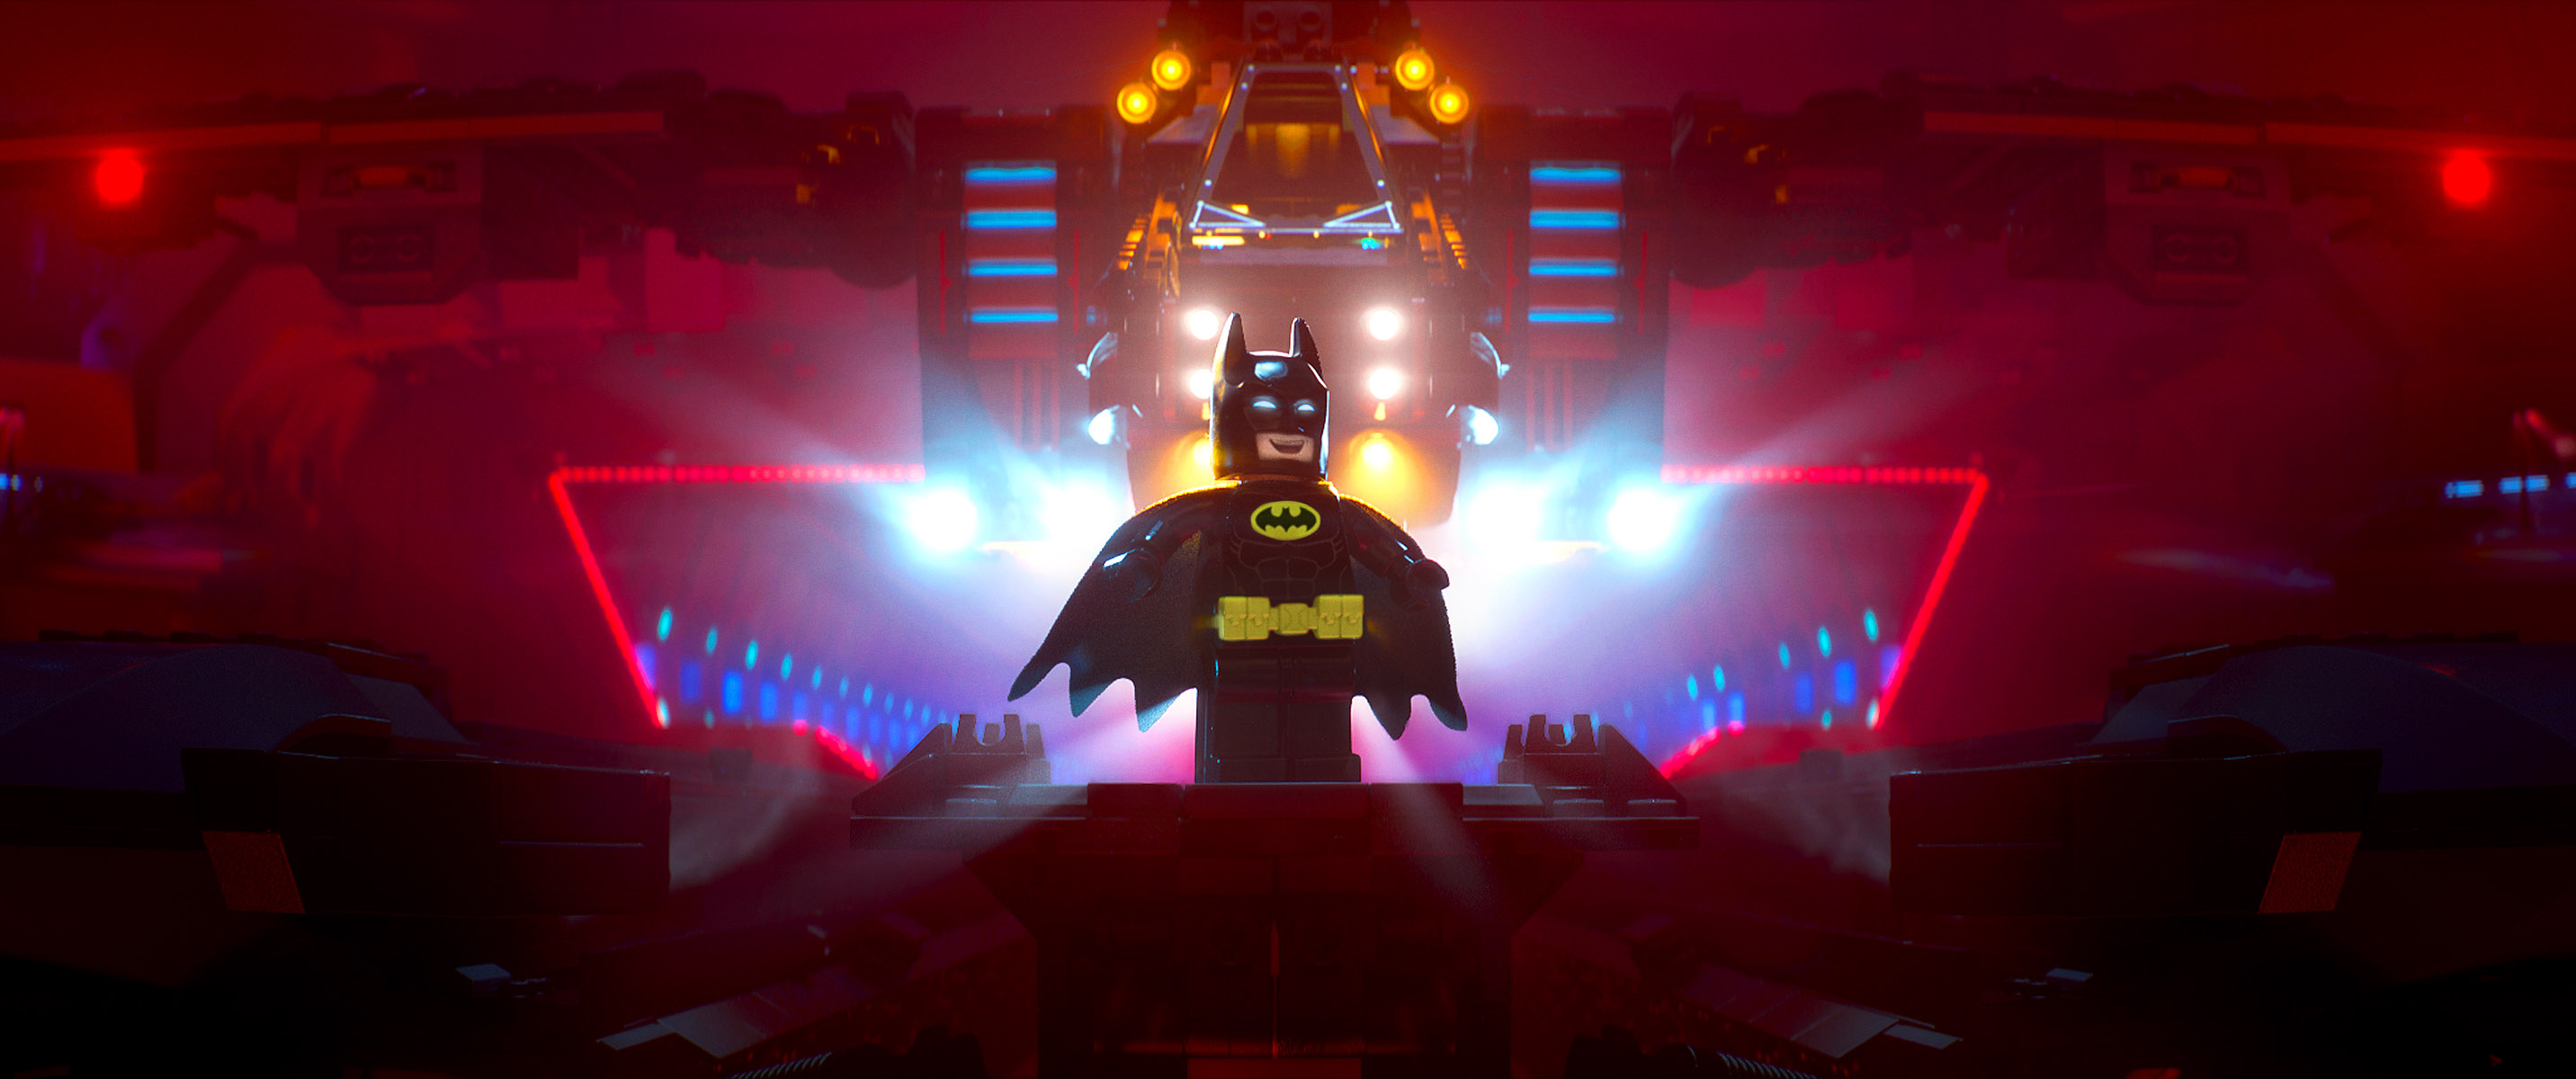 LEGO Batman works alone but you should bring your friends